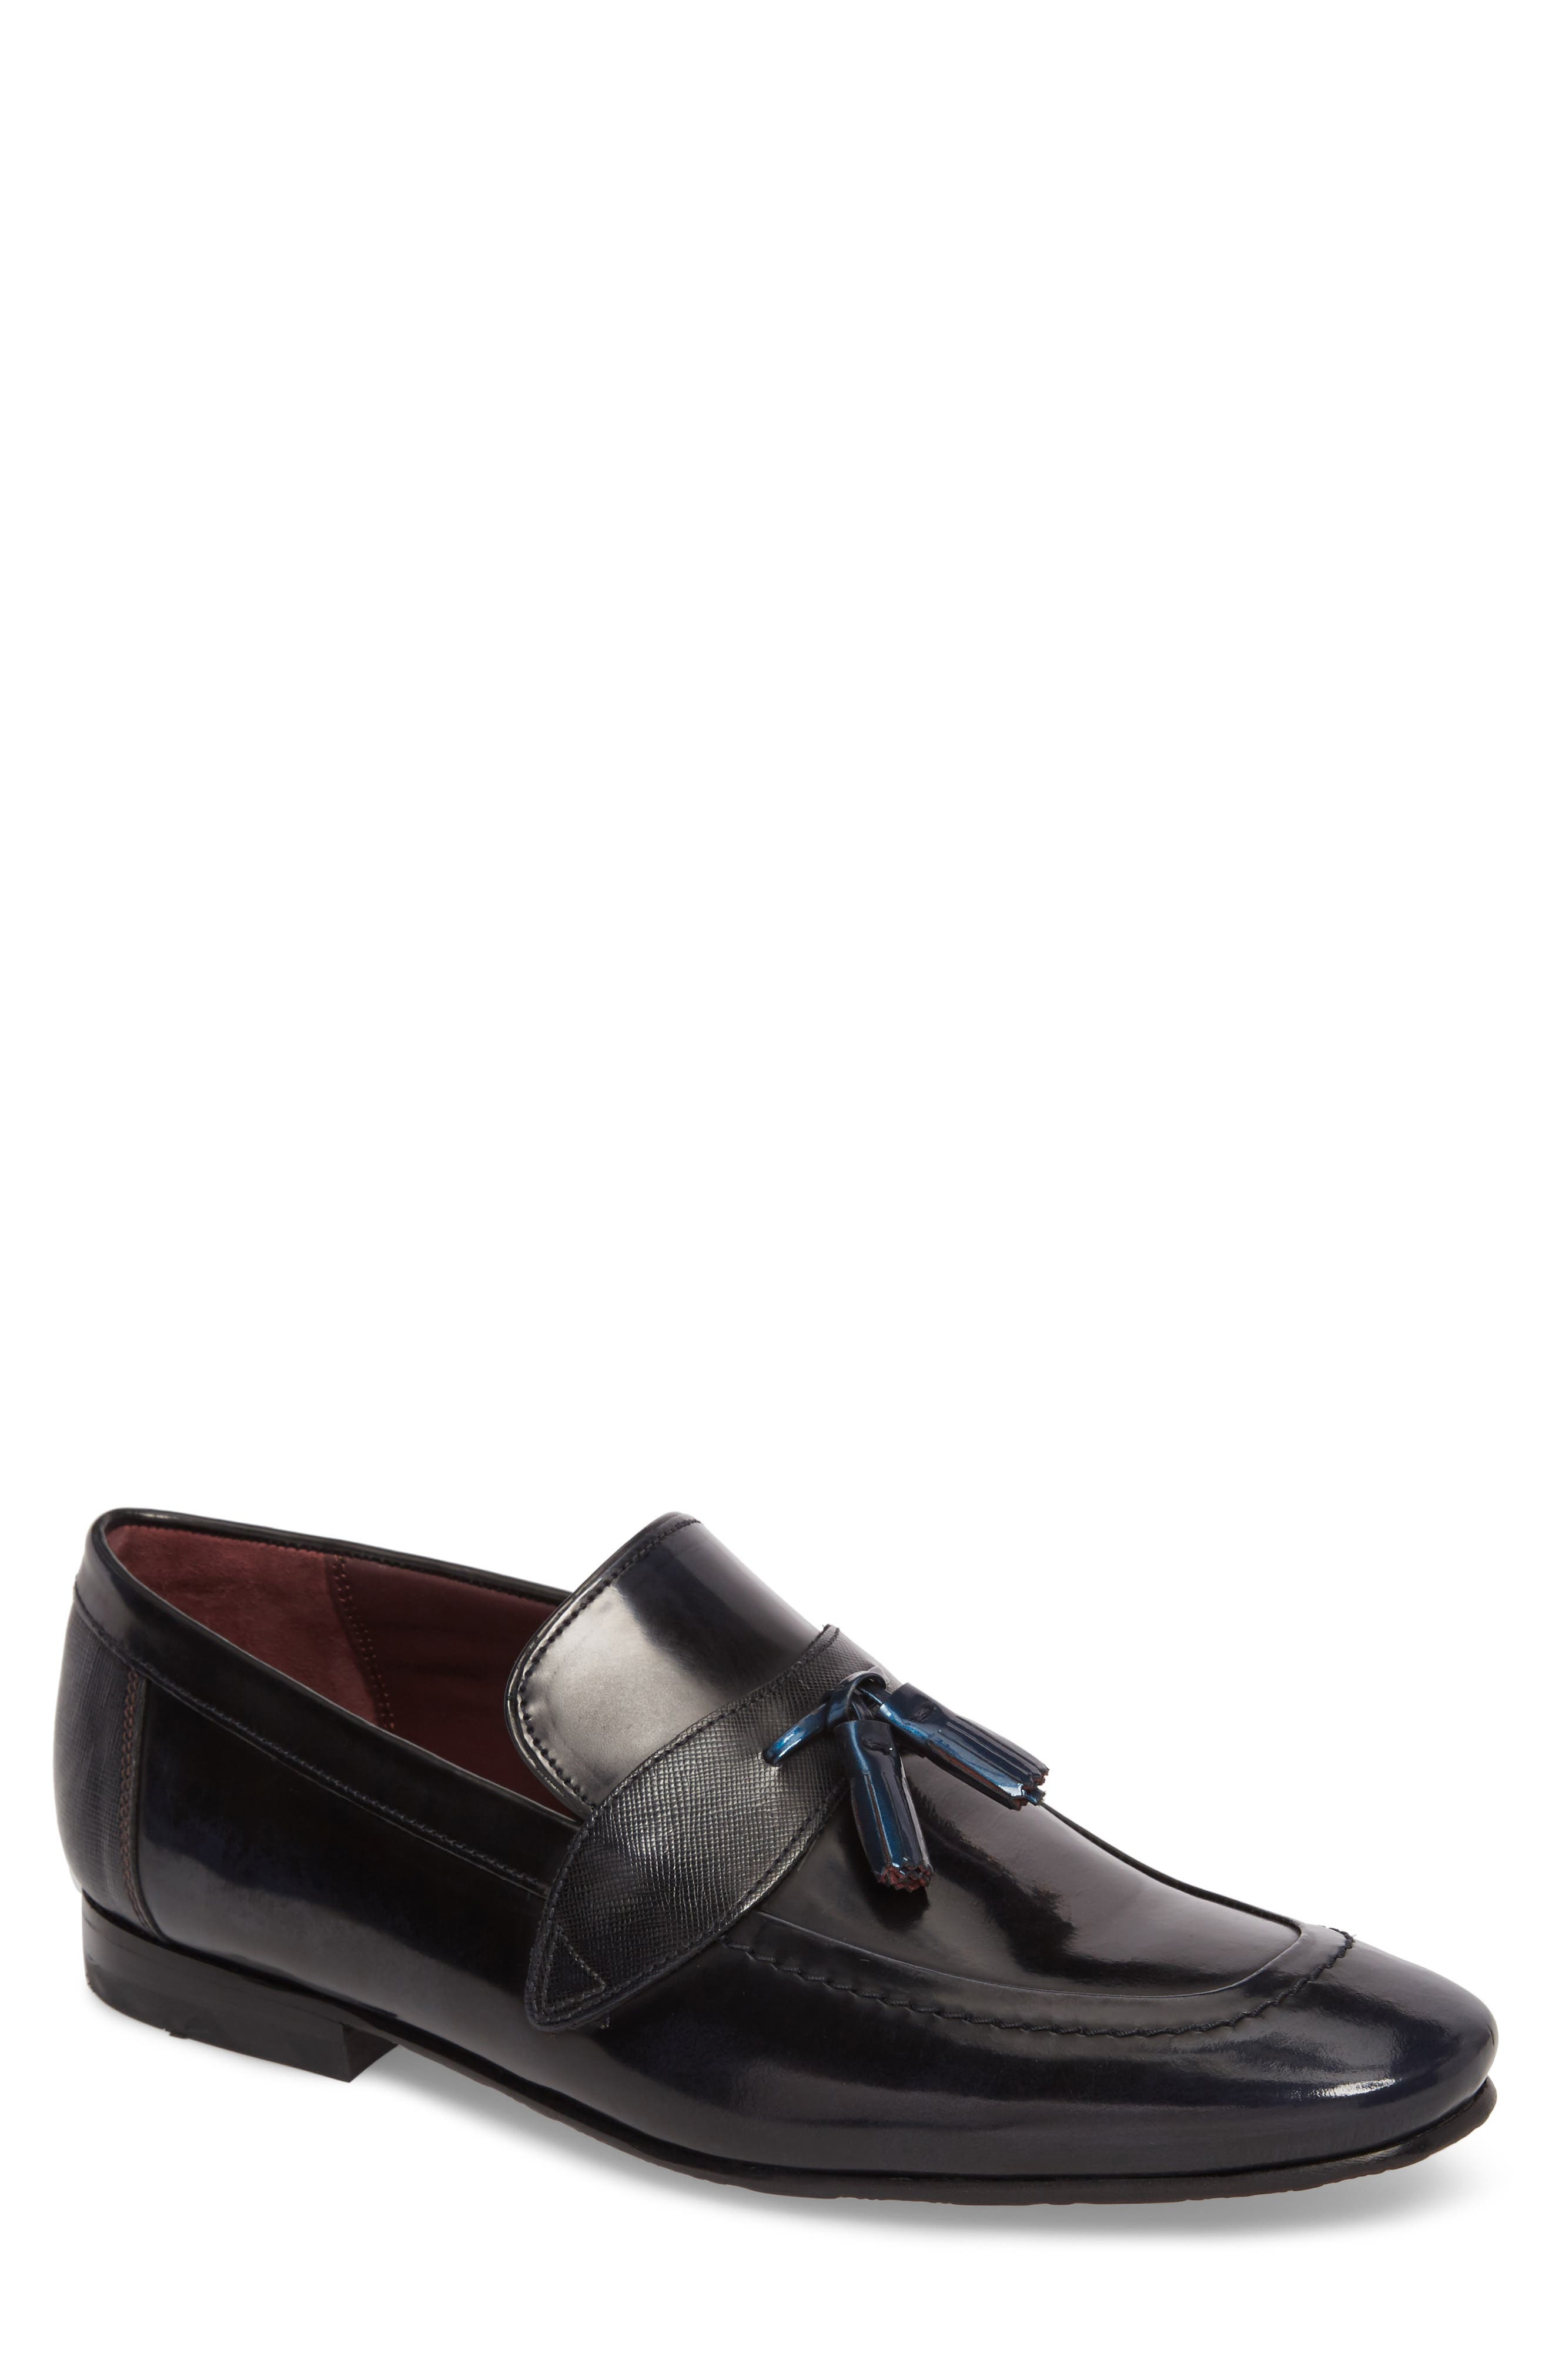 Grafit Tassel Loafer,                             Main thumbnail 1, color,                             416